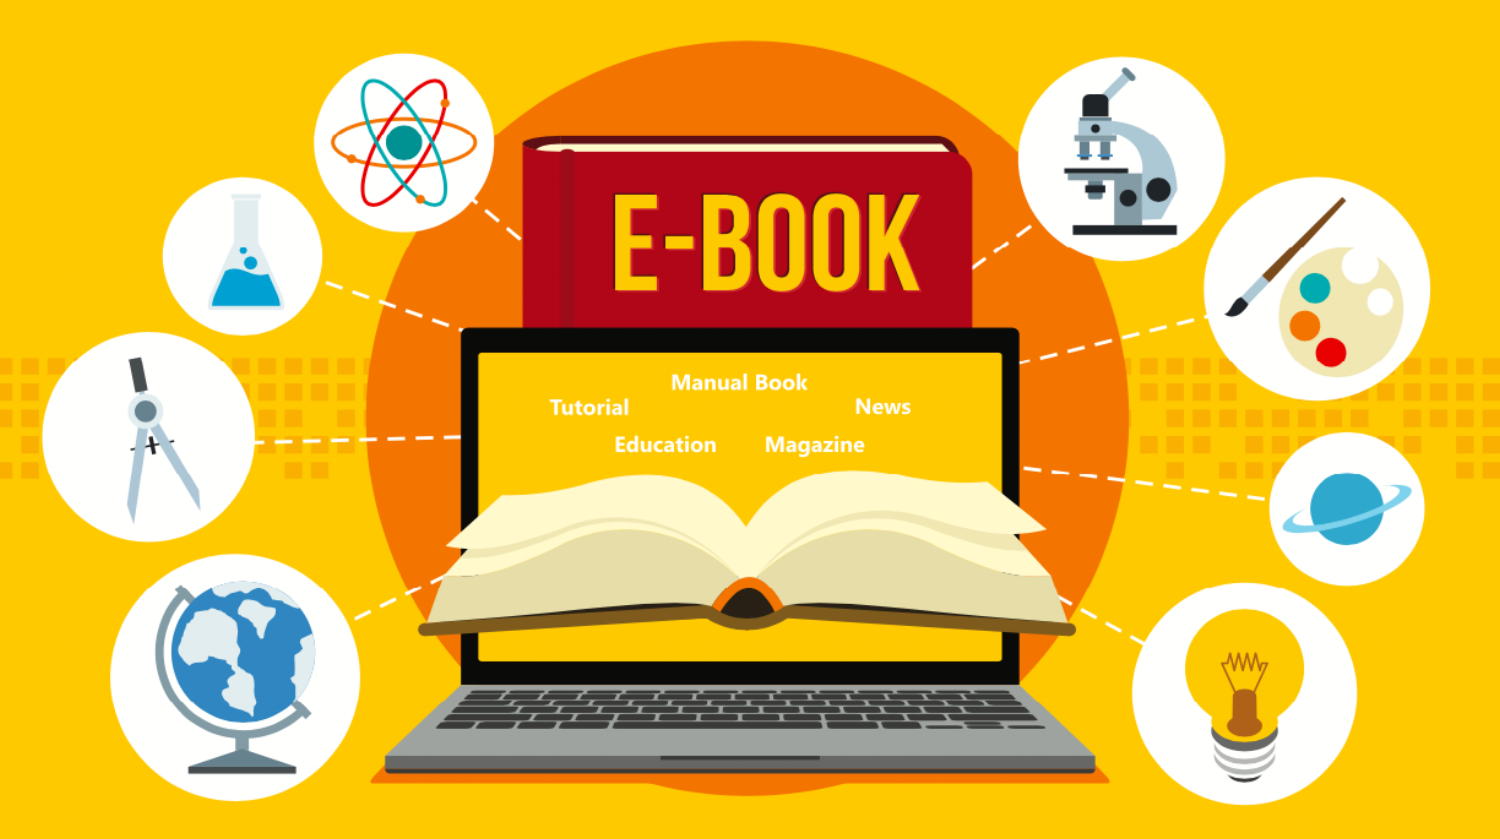 Promoting an ebook graphic-1-580655-edited